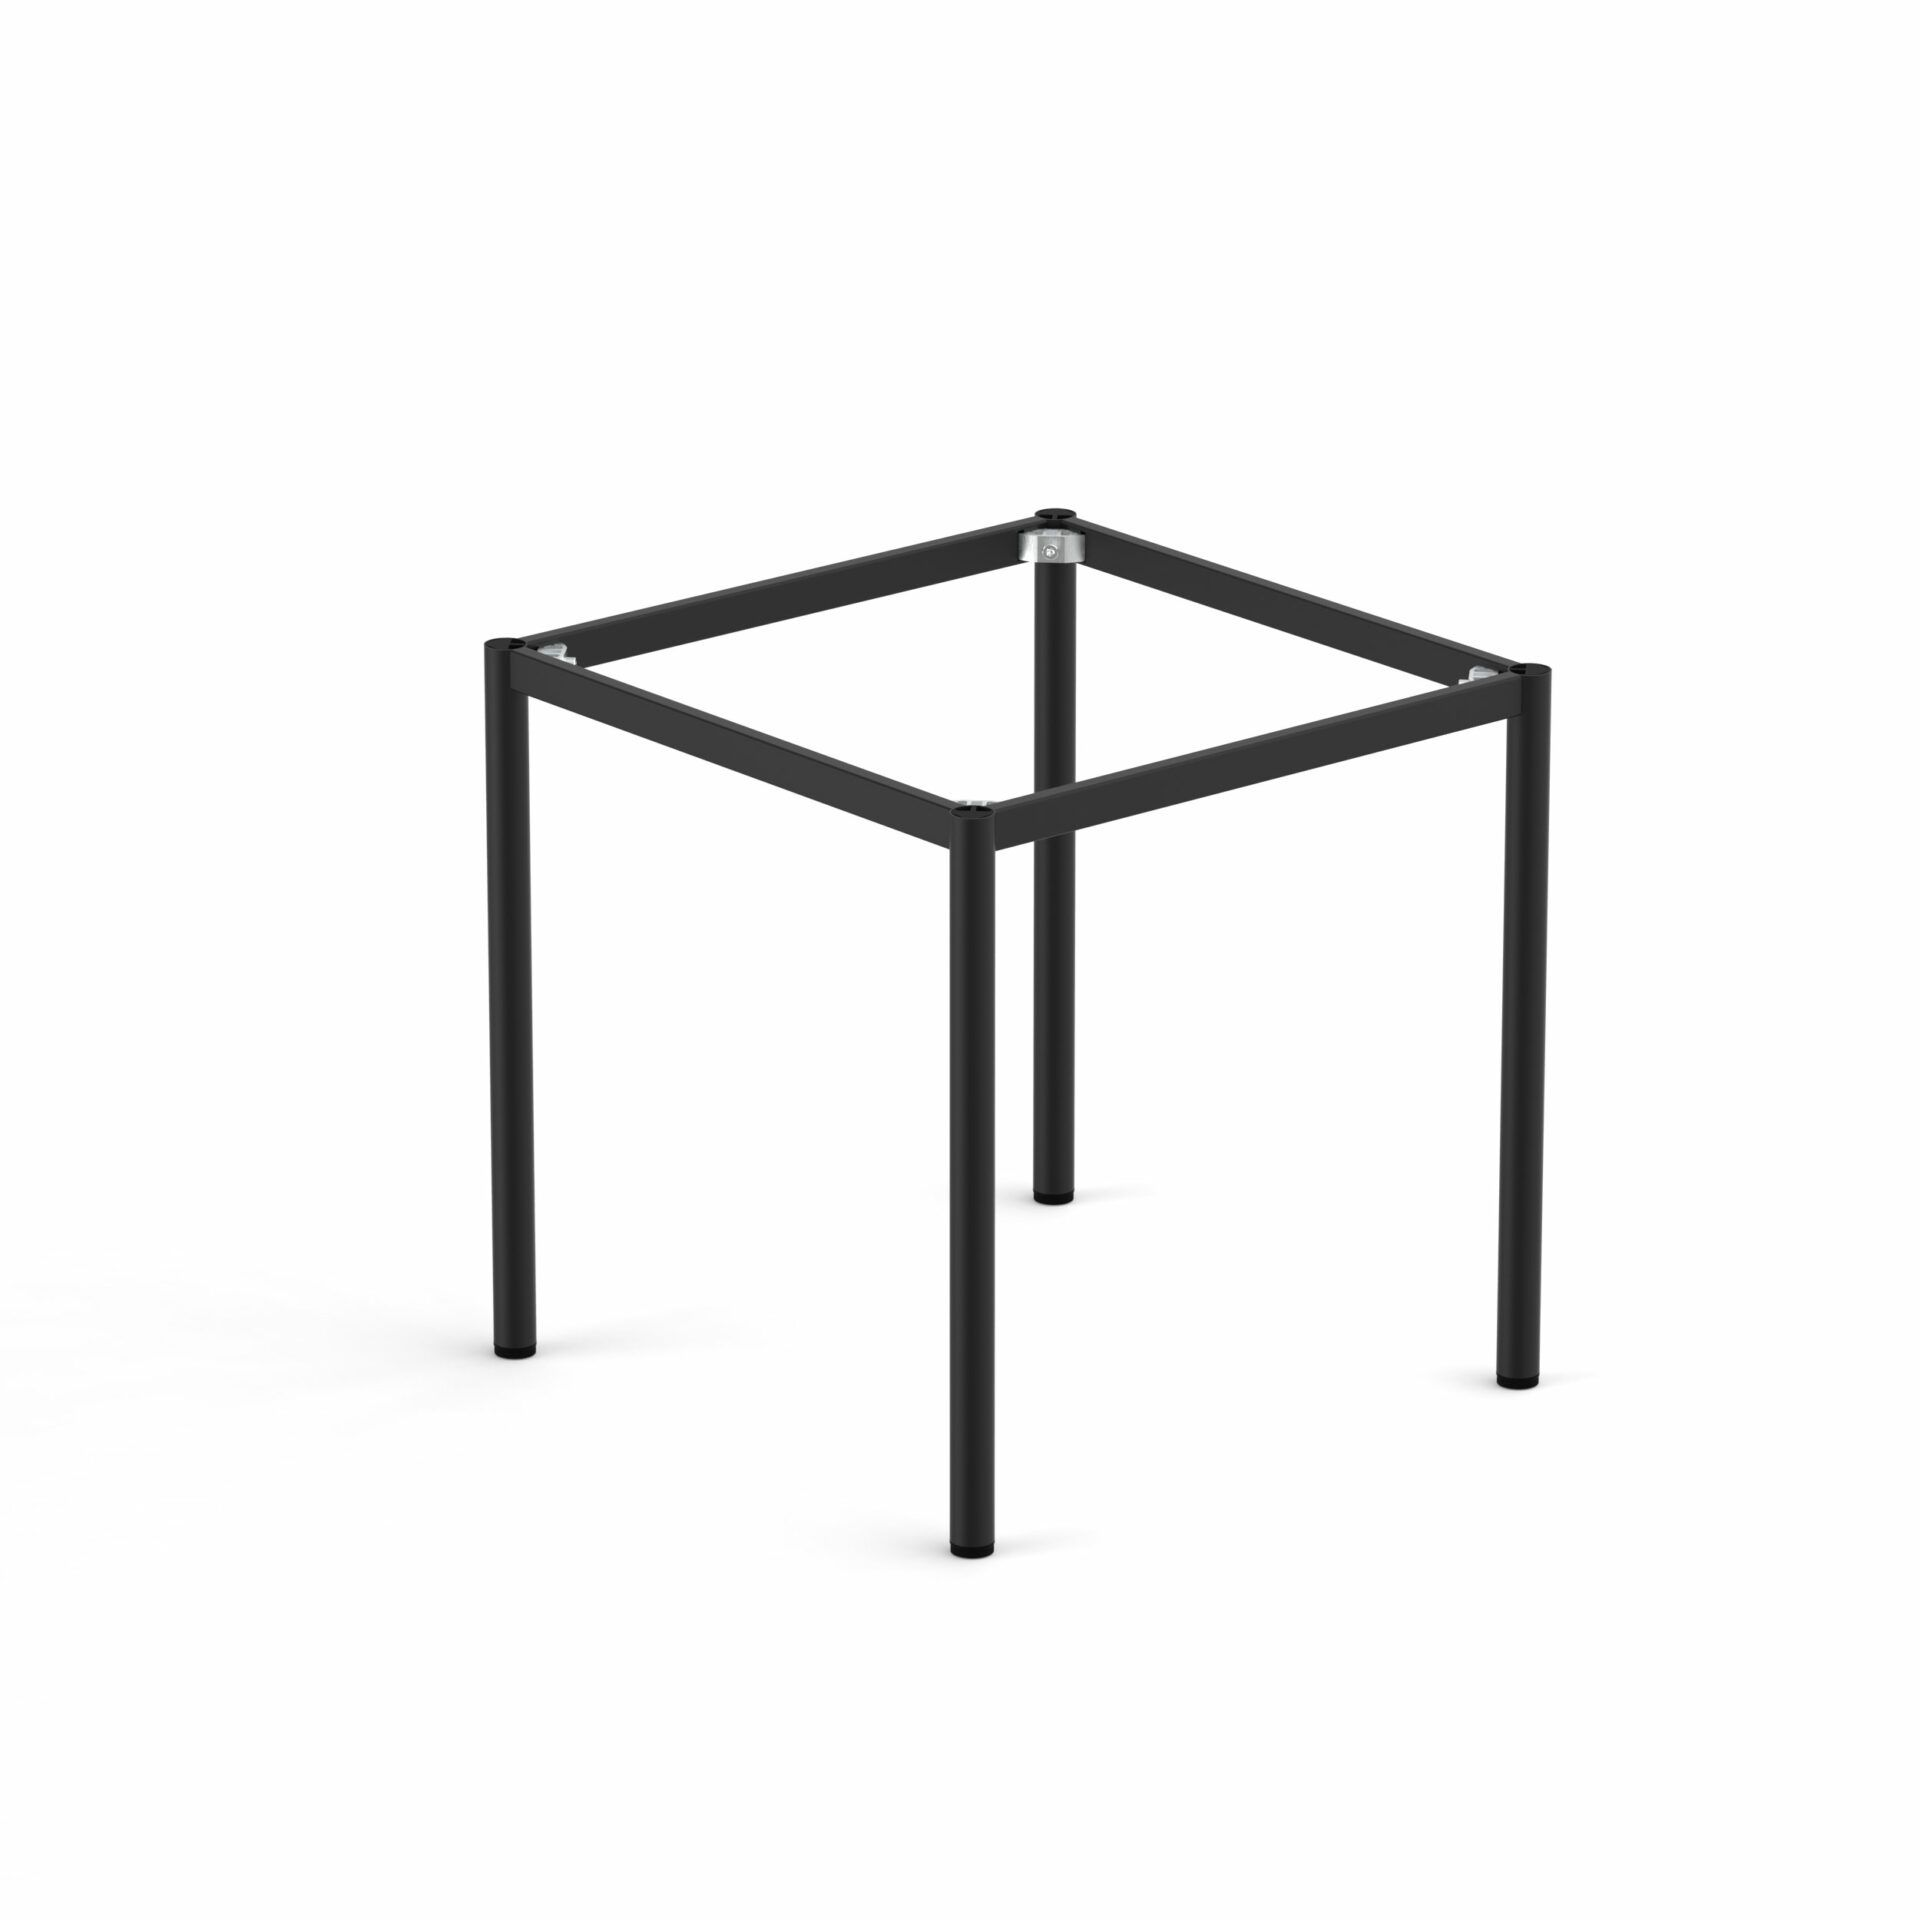 Spire Round leg Table Height Frame 990 x 590 x 720H